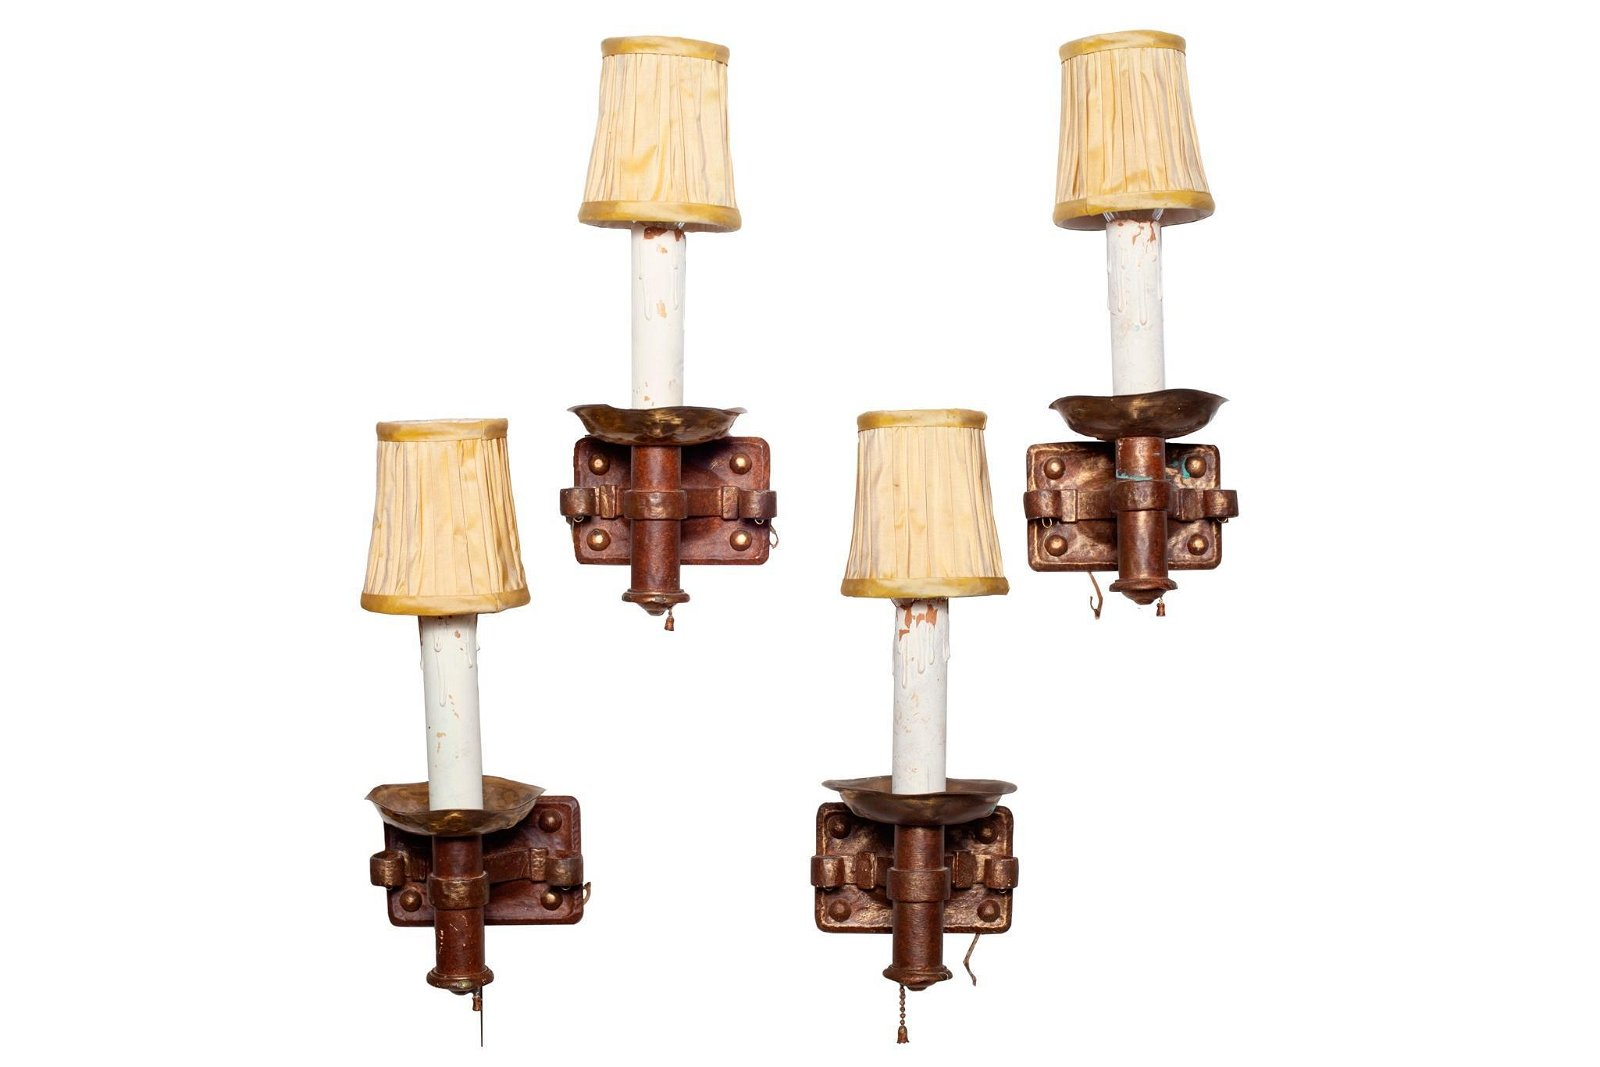 Set of Four Arts & Crafts Style Wall Sconces